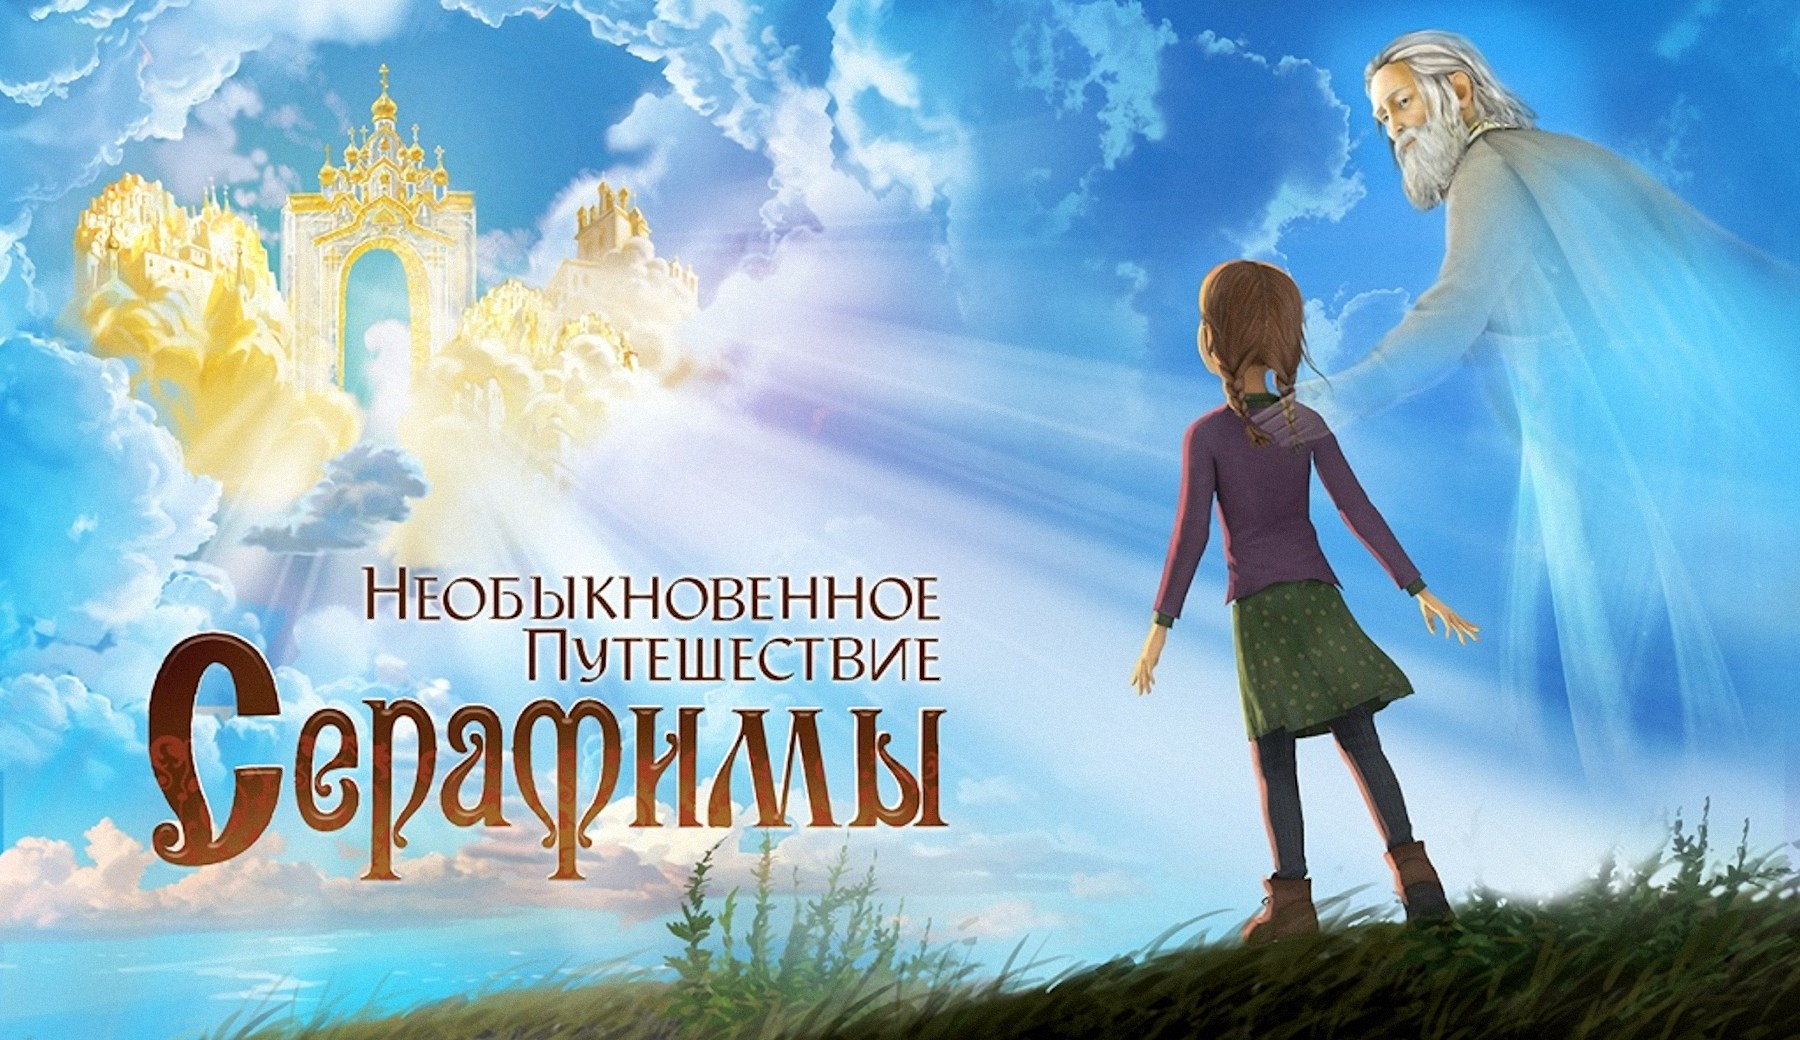 Download Serafima - Christian Orthodox animation with English subtitle har Torrent